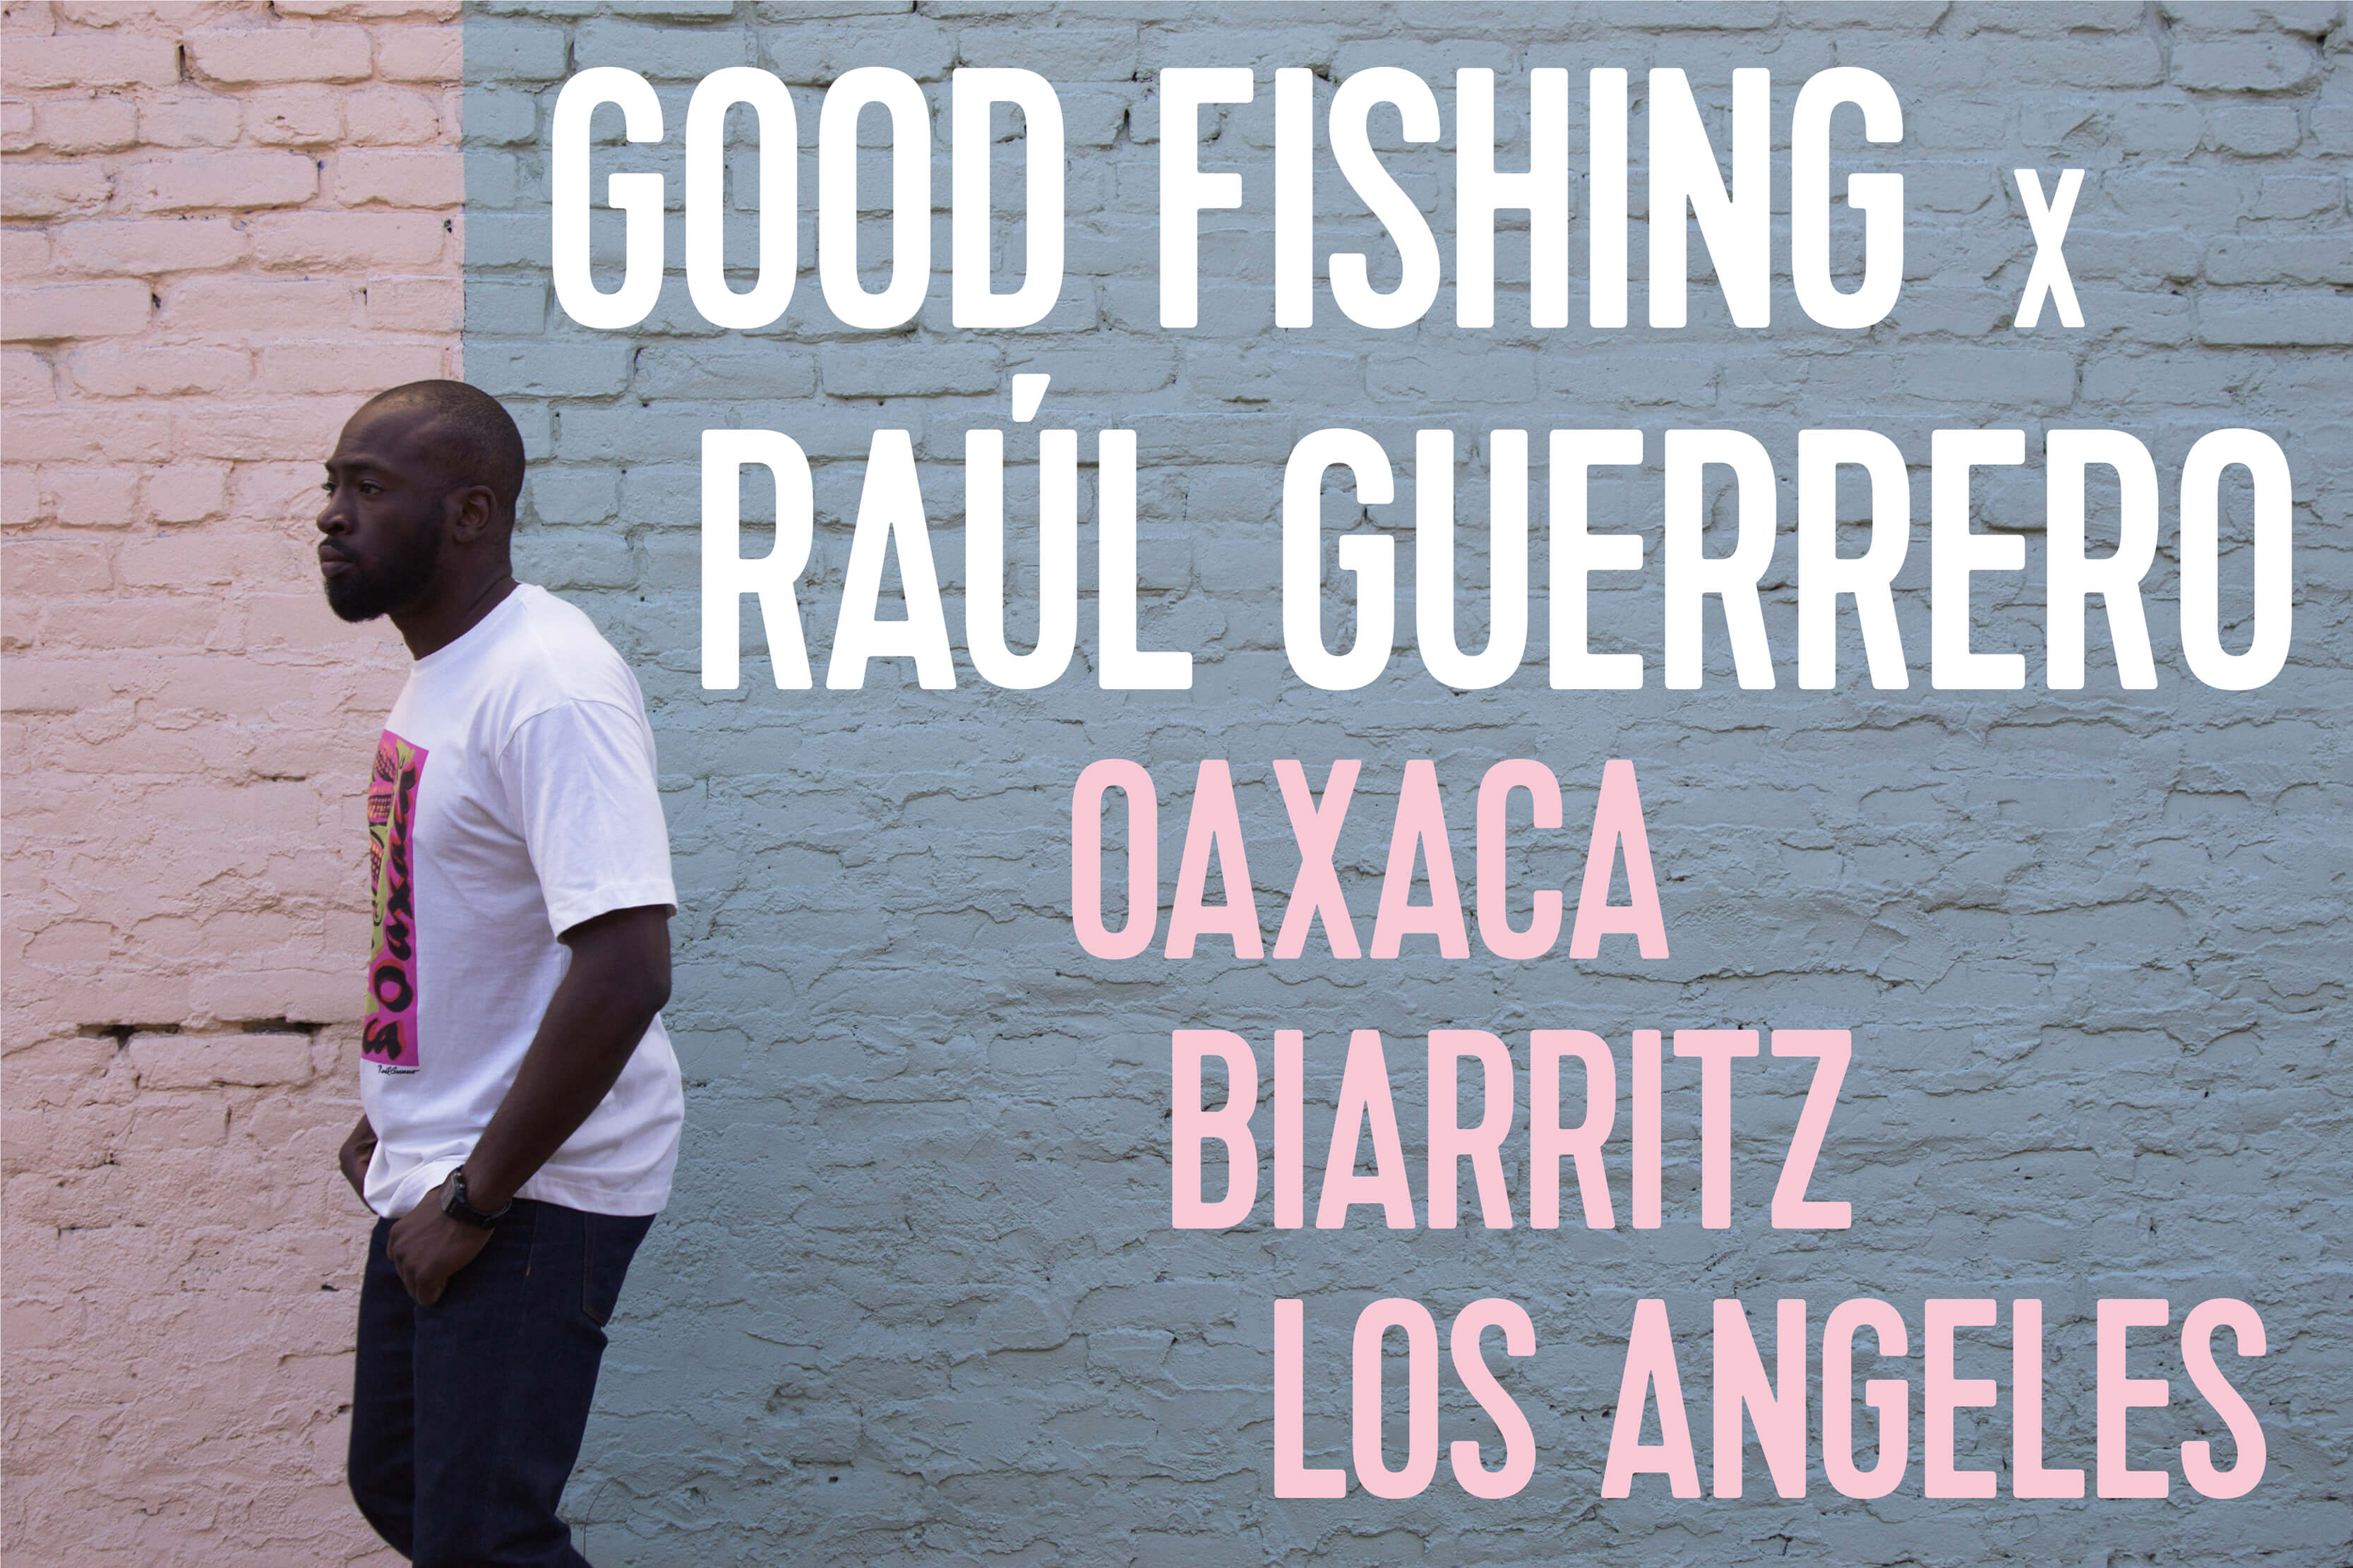 Good Fishing X Raúl Guerrero Lookbook - Oaxaca, Biarritz, Los Angeles